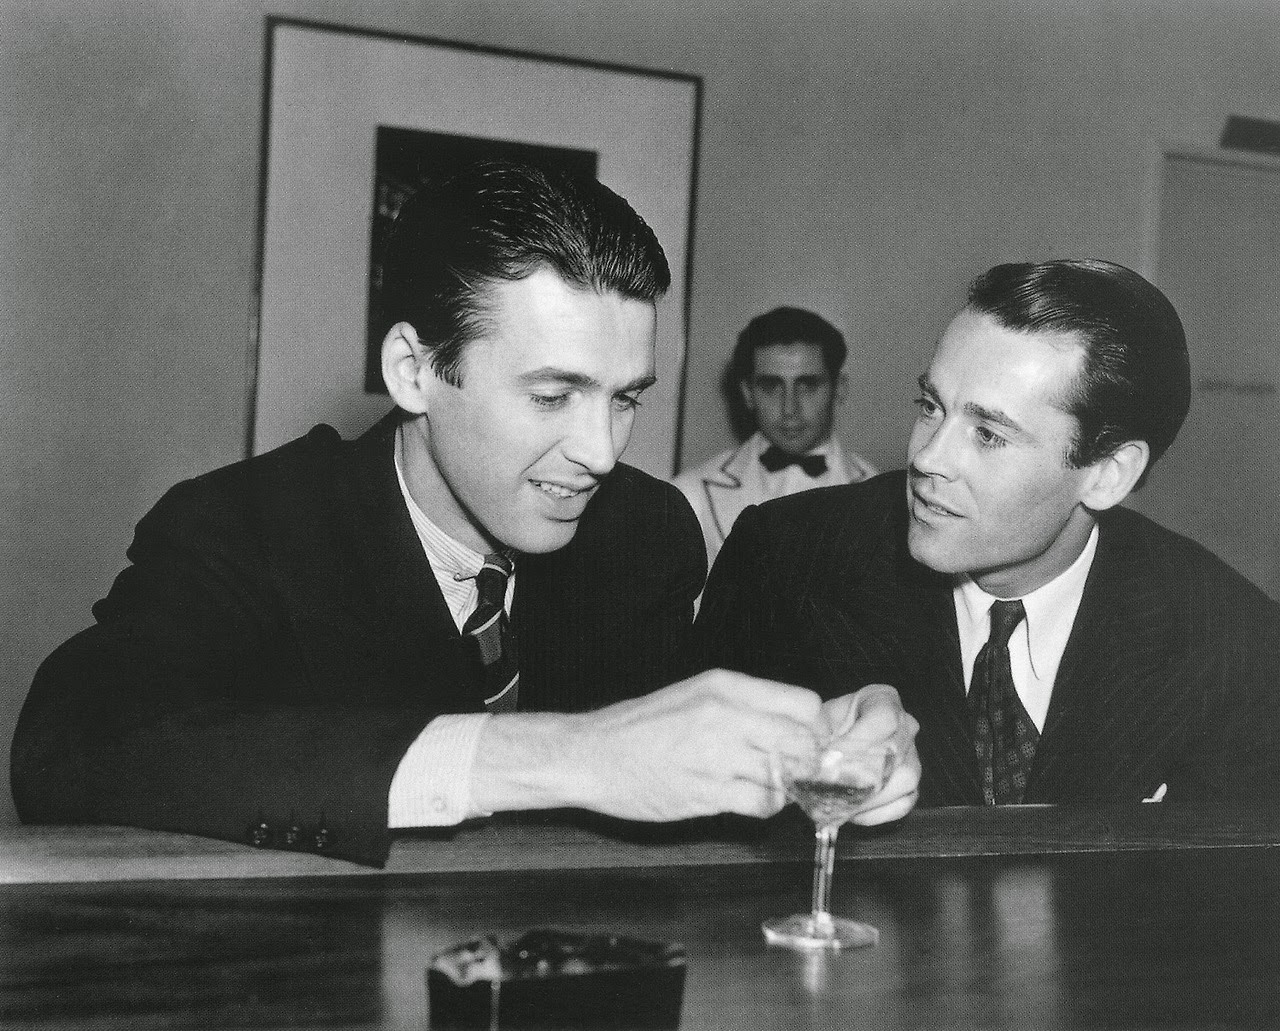 5 Ways the Jimmy Stewart / Henry Fonda Bromance Will Ruin Your Life